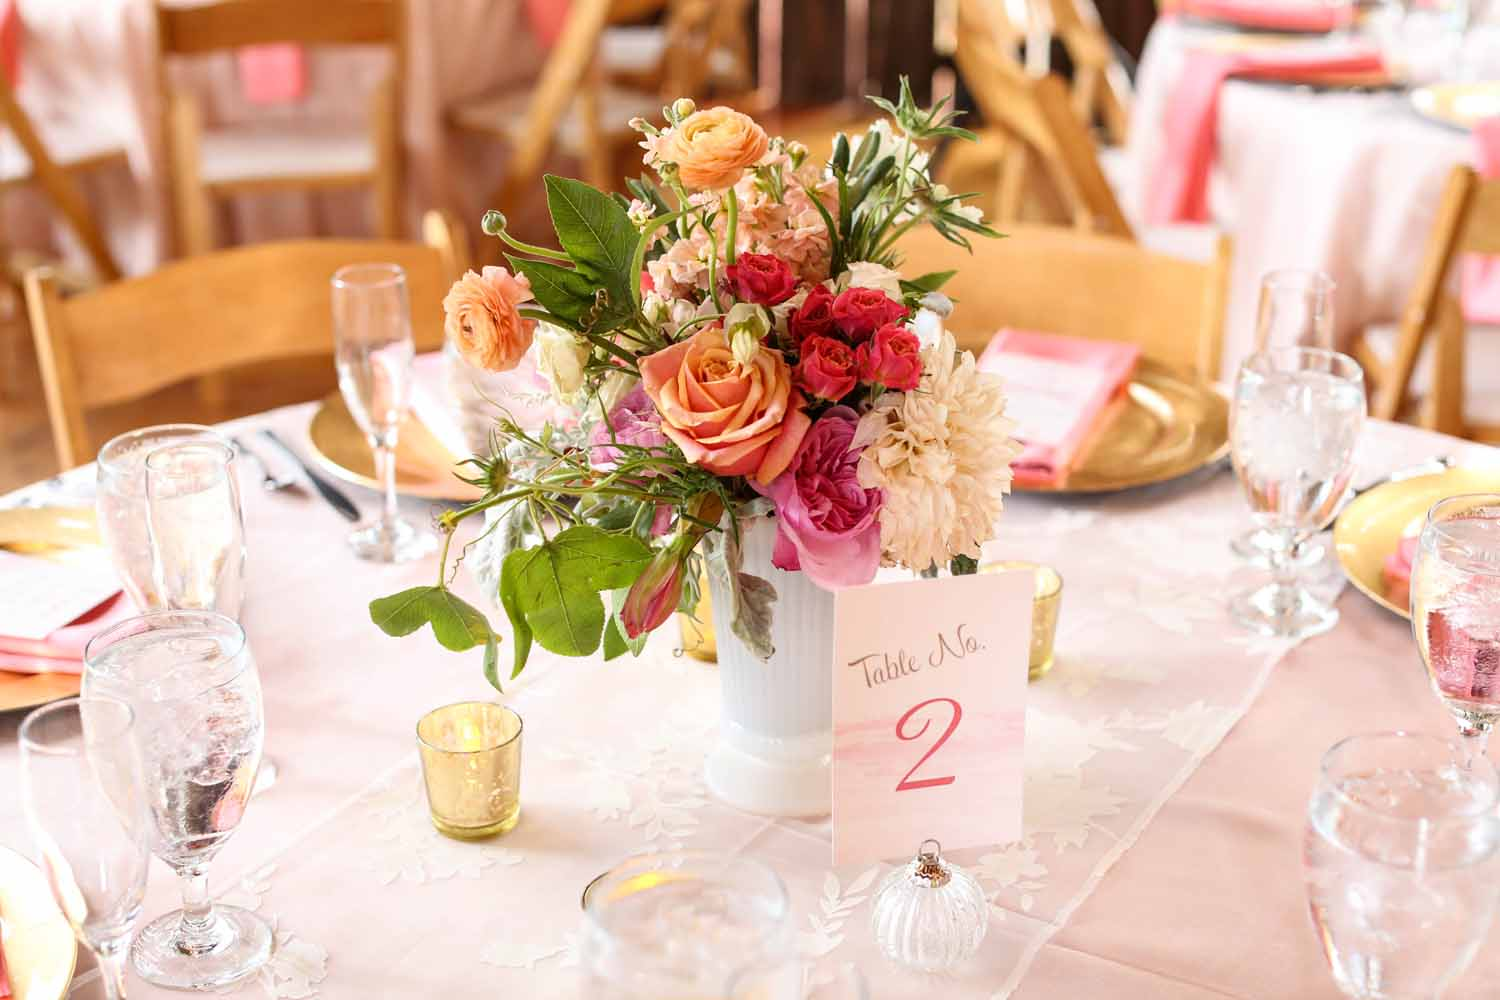 Table Numbers | Colorful Floral Arrangements | Tableau Events